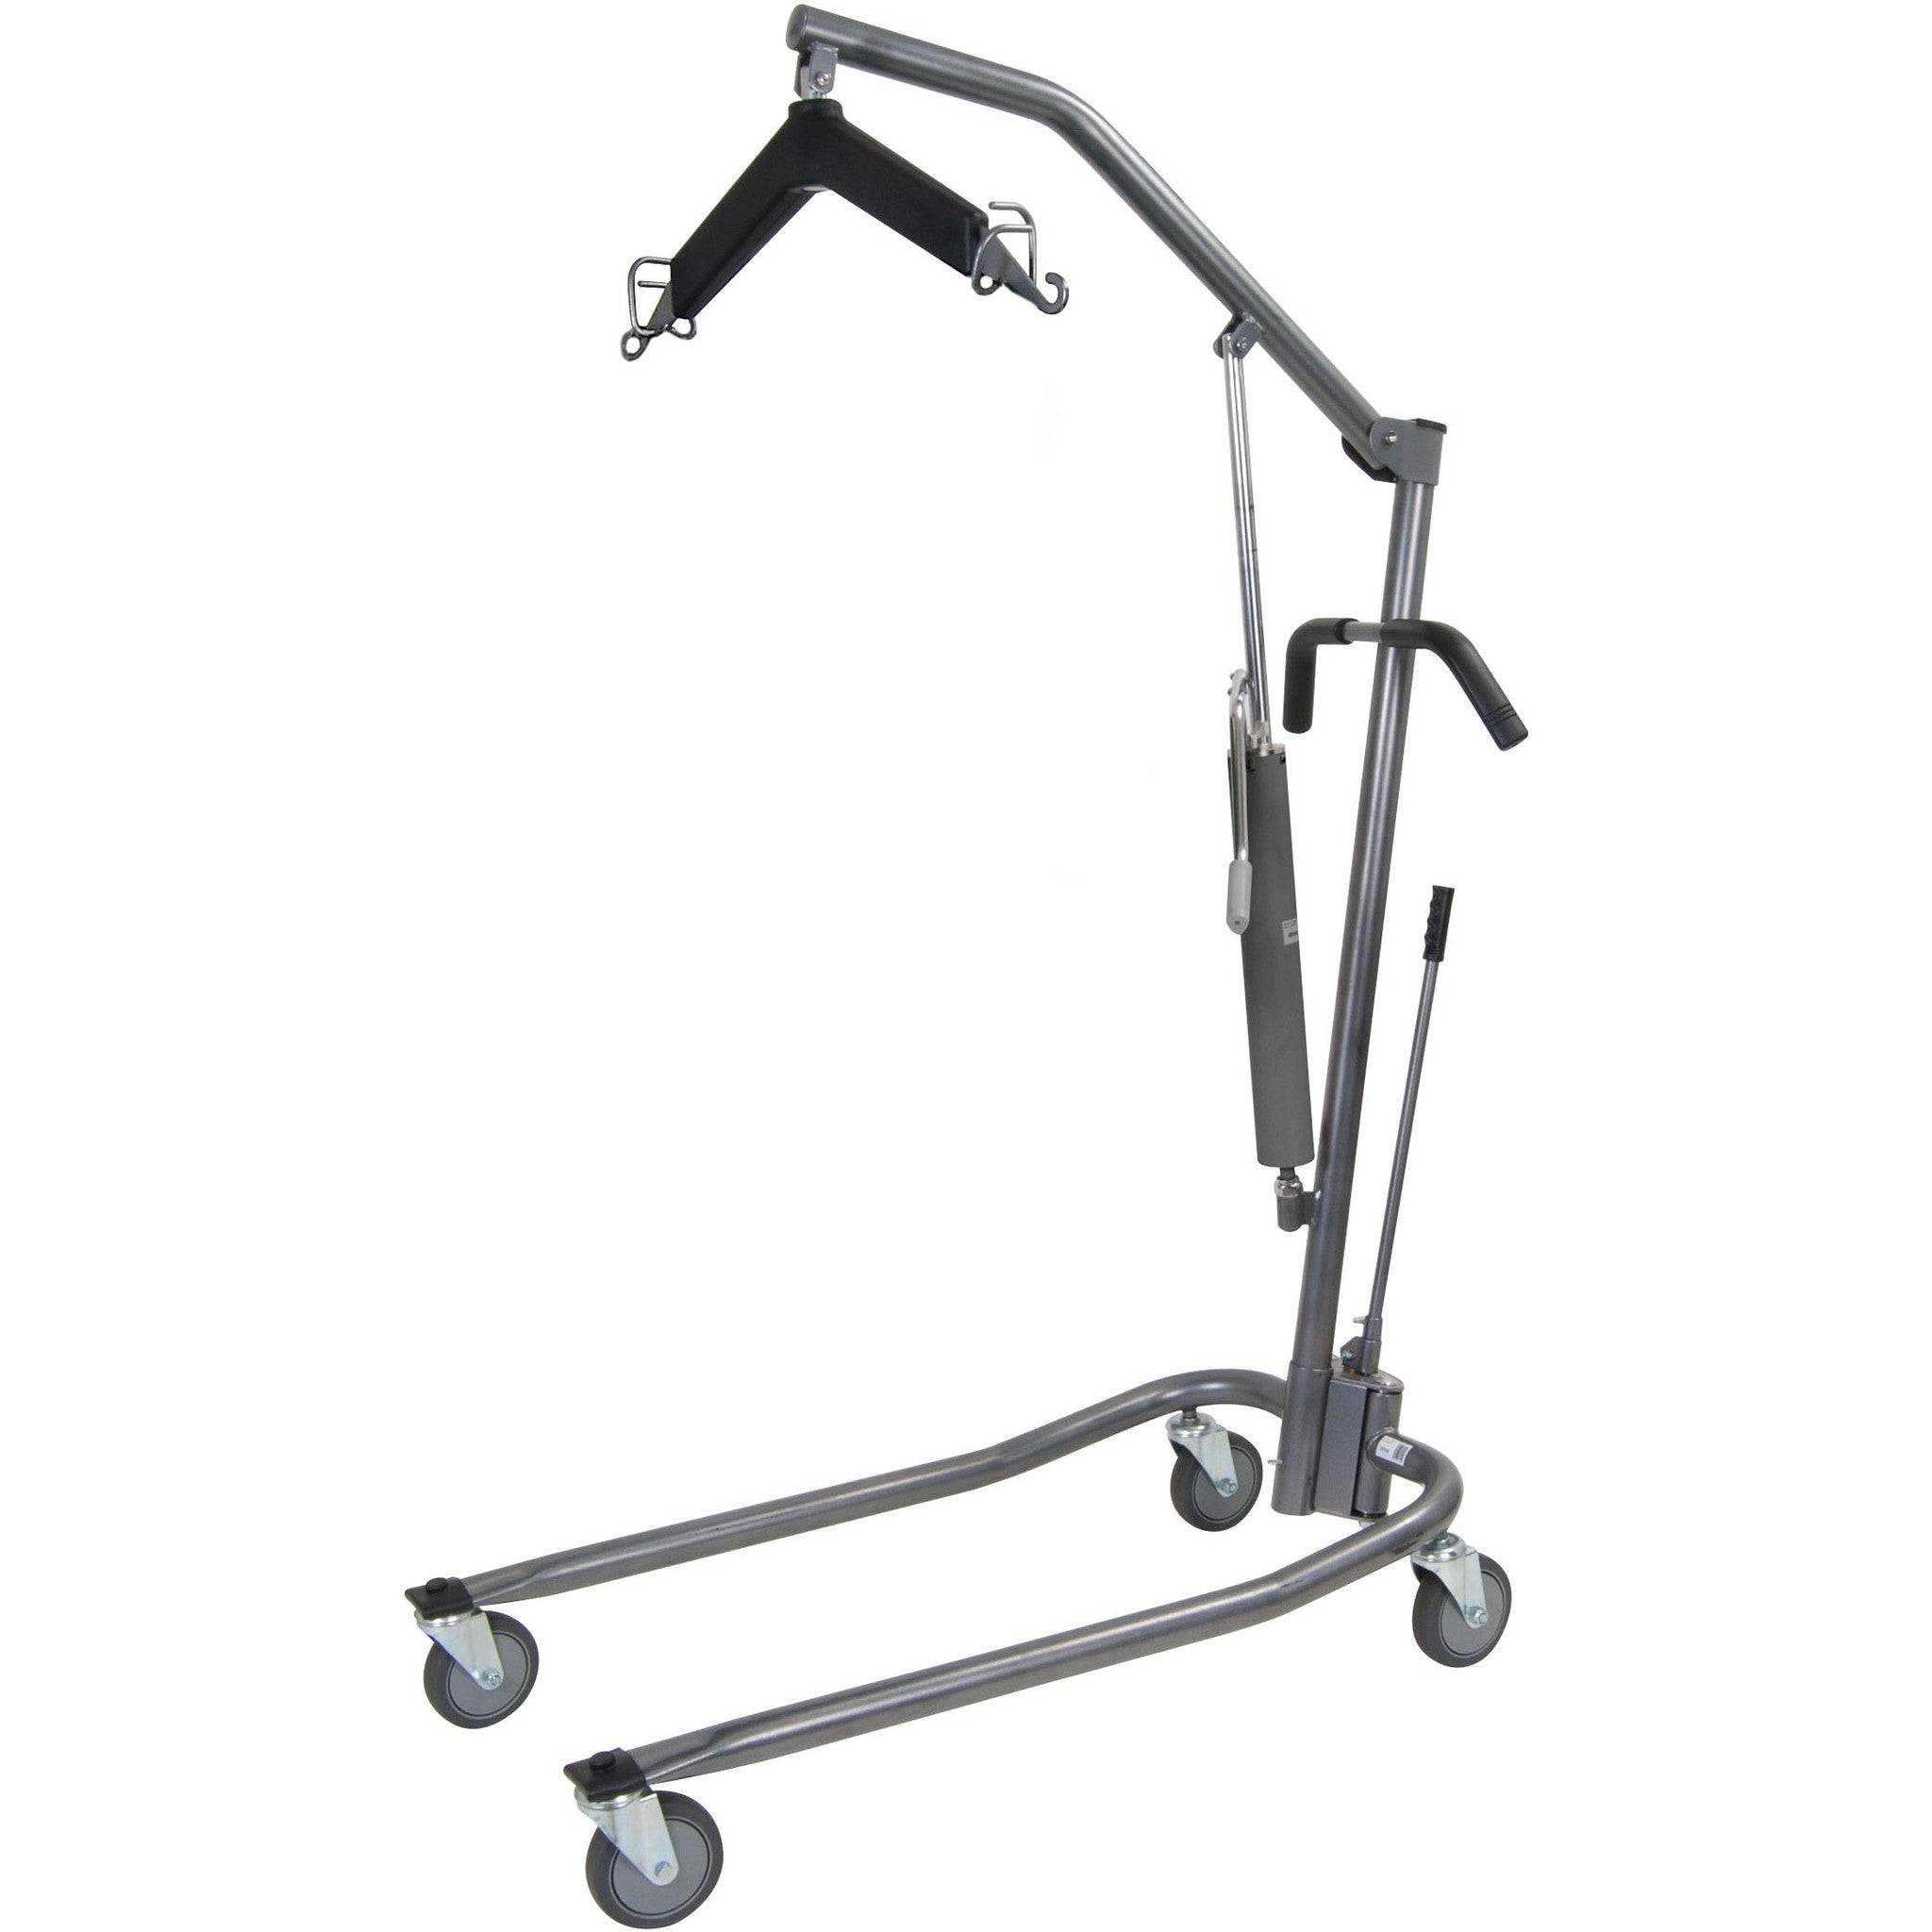 Hydraulic patient lift with six point cradle csa medical for Mineral wool pipe insulation weight per foot